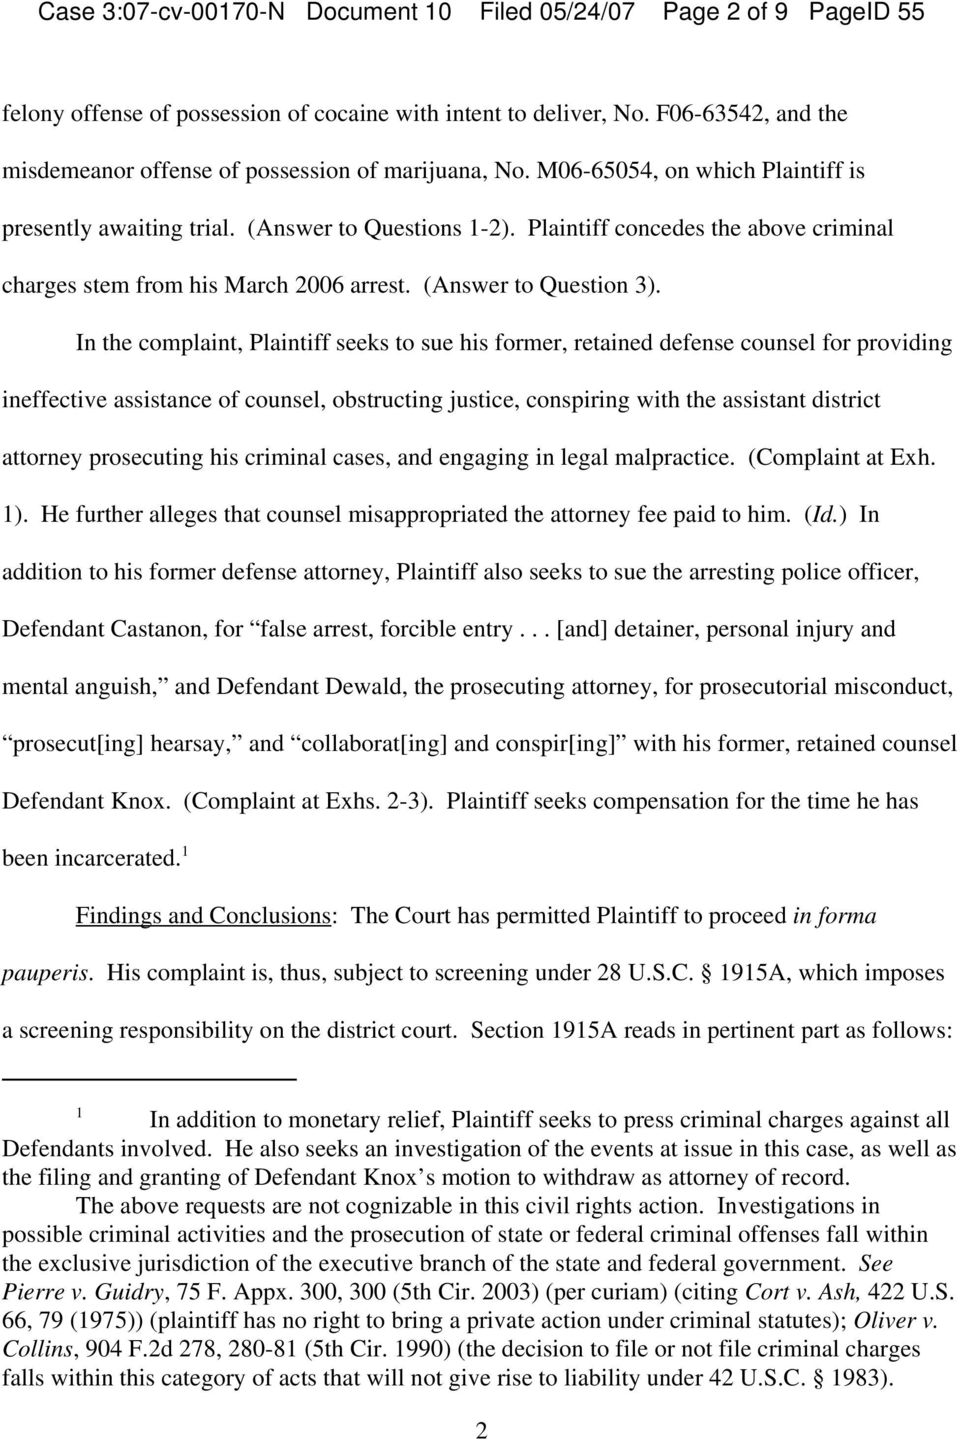 Plaintiff concedes the above criminal charges stem from his March 2006 arrest. (Answer to Question 3).